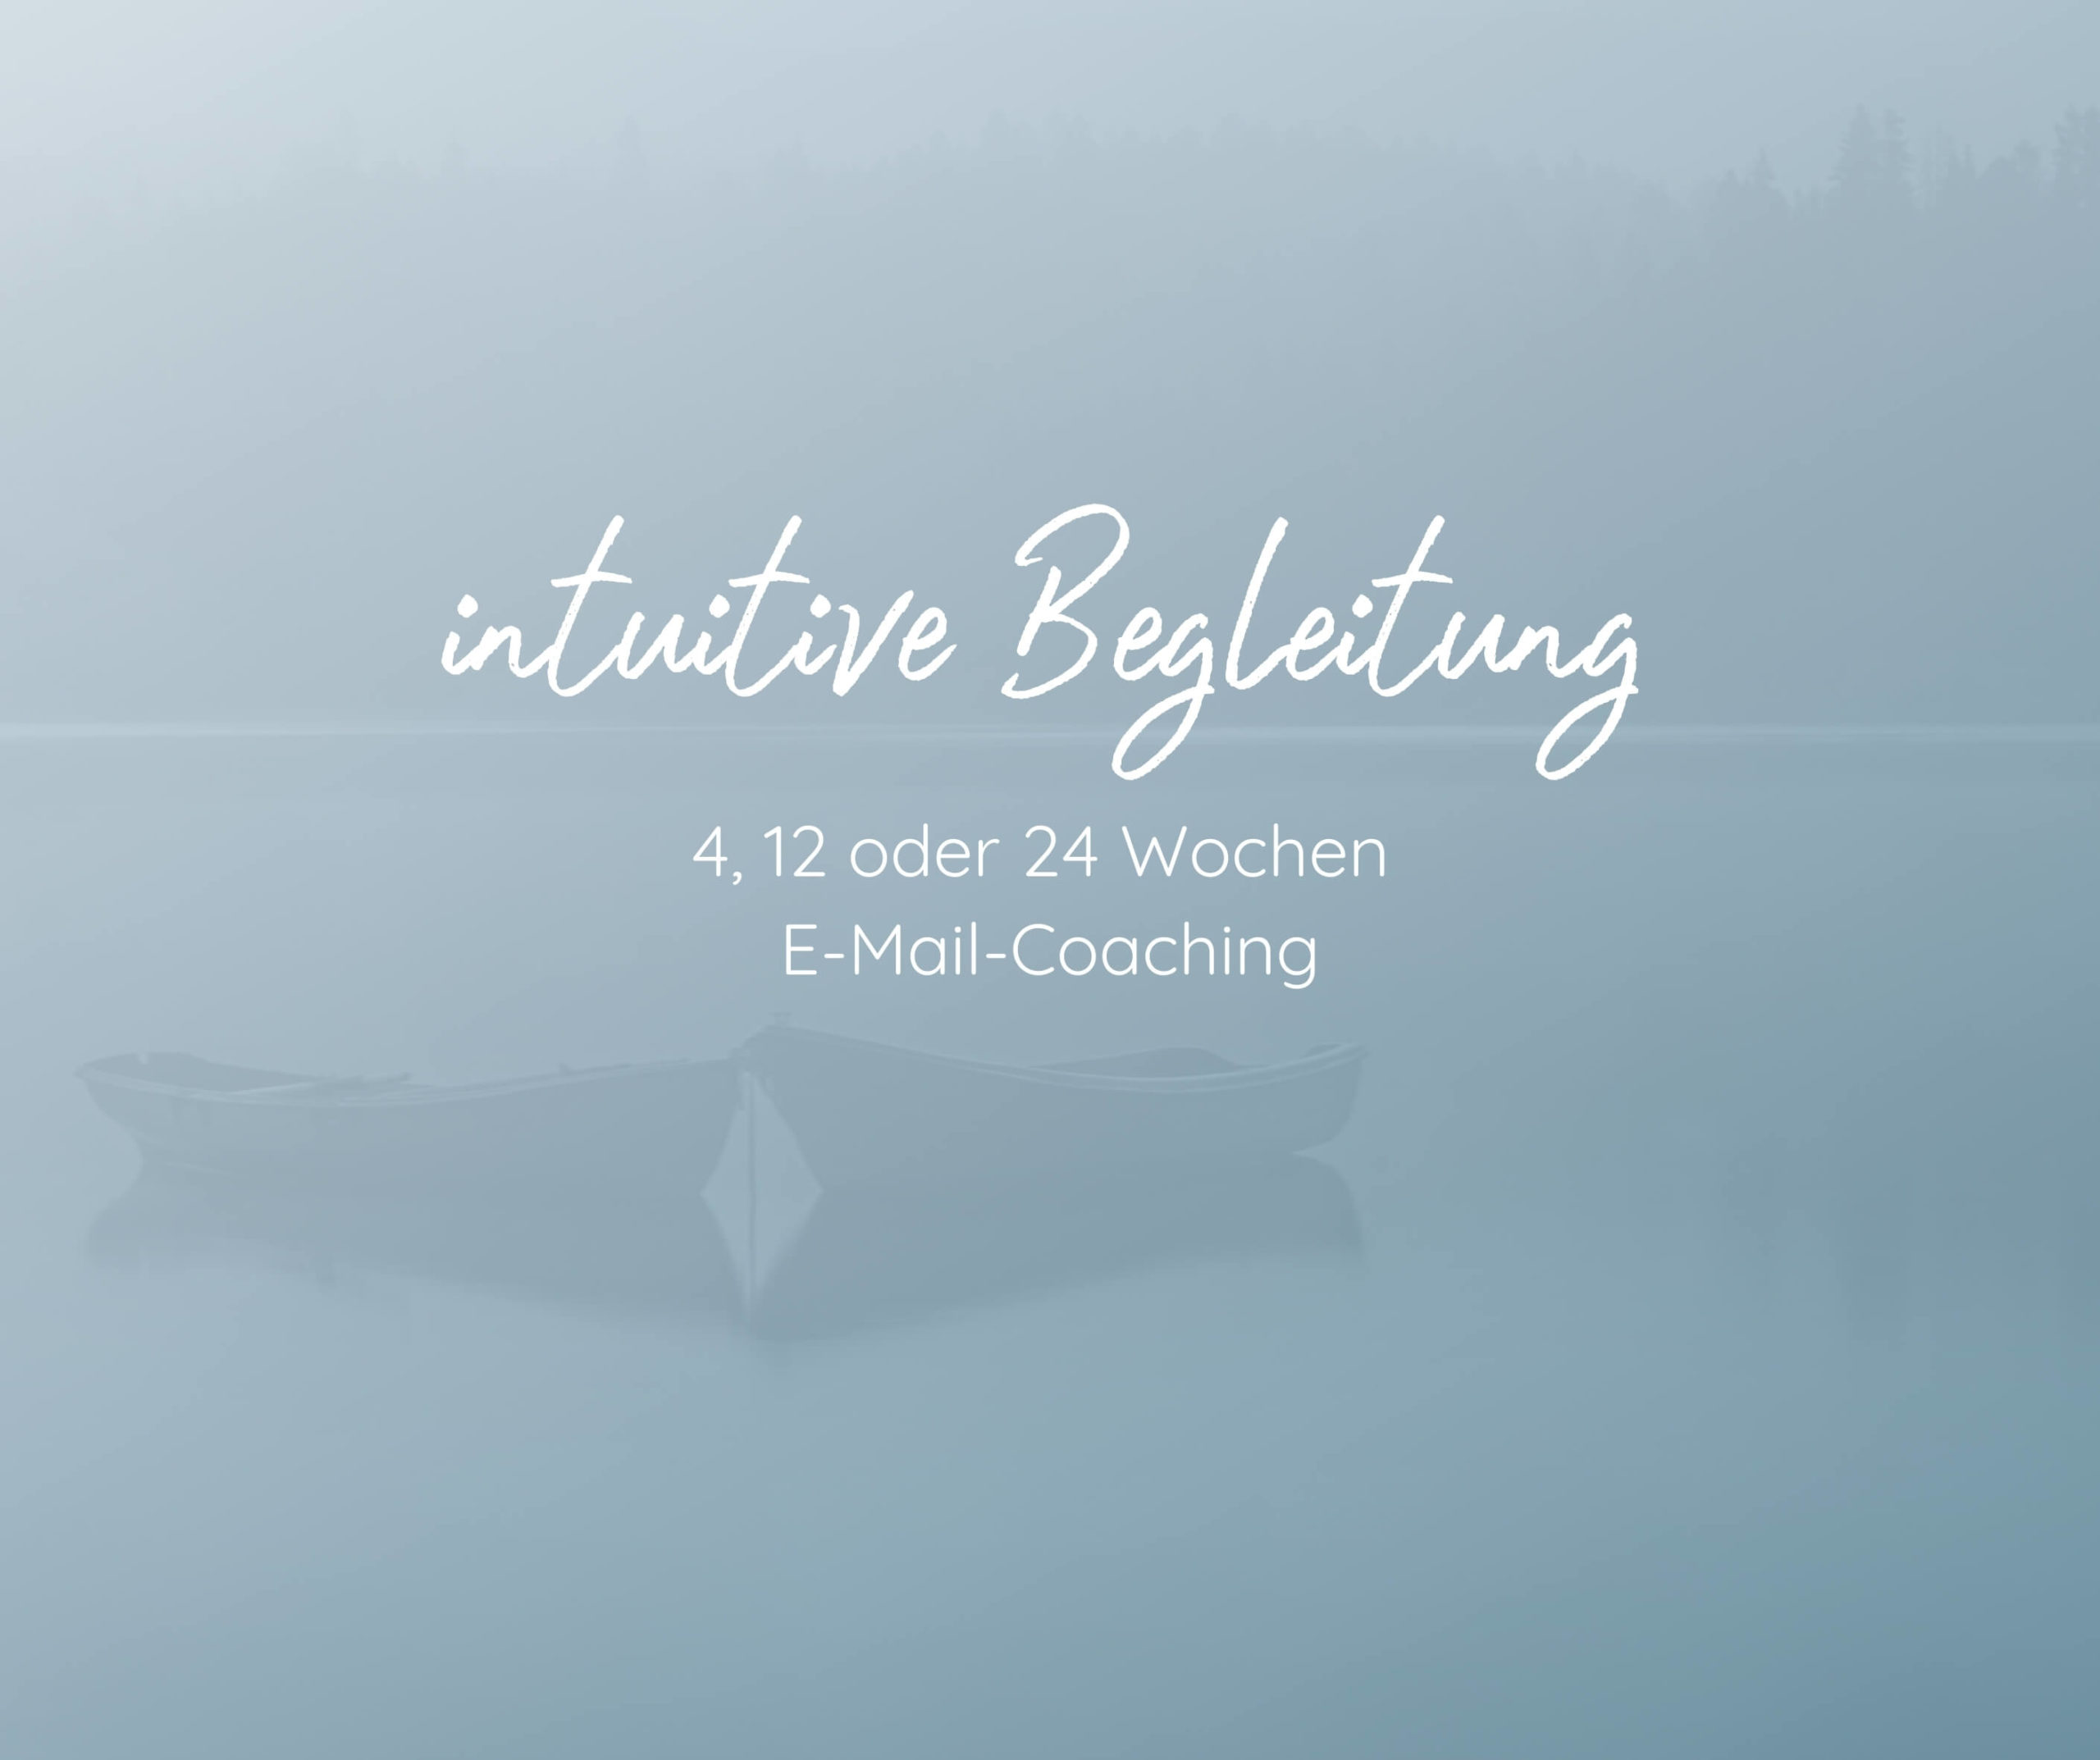 intuitives Coaching: 4, 12 oder 24 Wochen E-Mail-Coaching